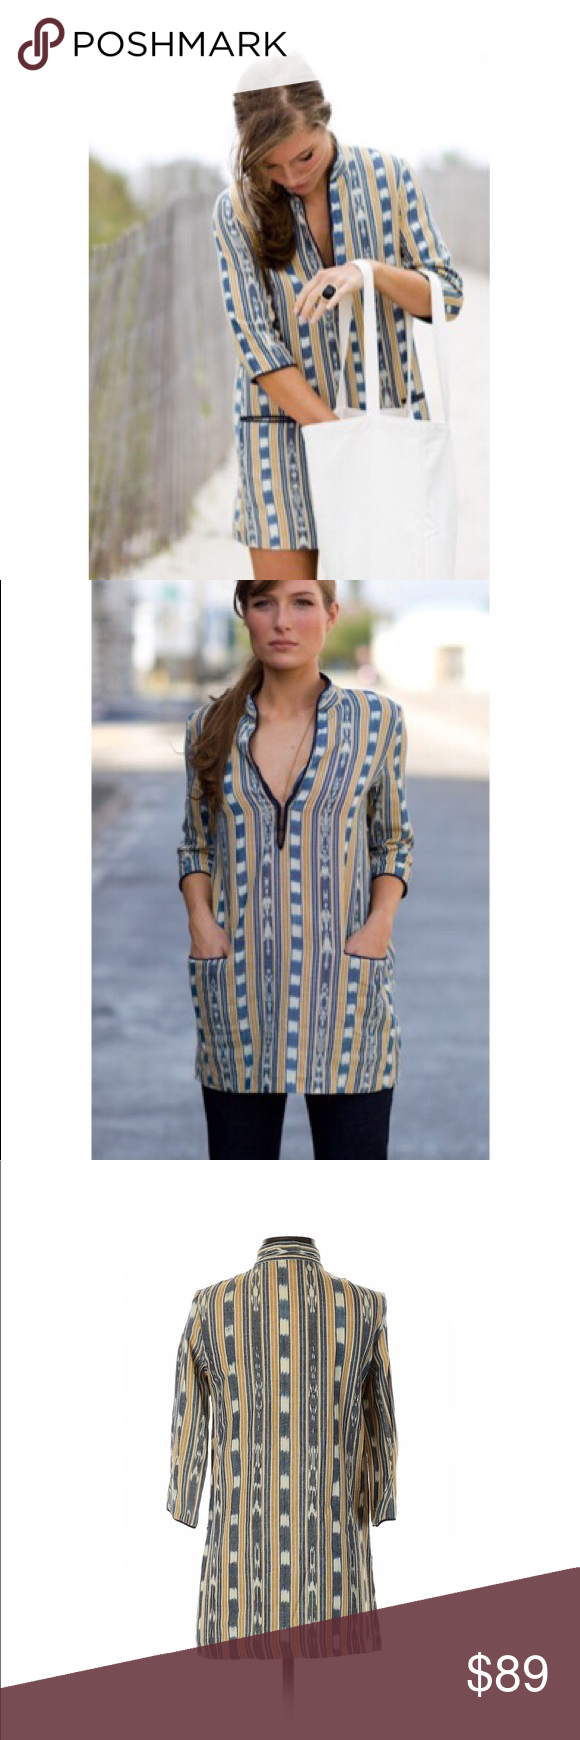 Emerson fry lkat tunic Made of cotton  Very comfy ! Emerson Fry Dresses Mini #emersonfry